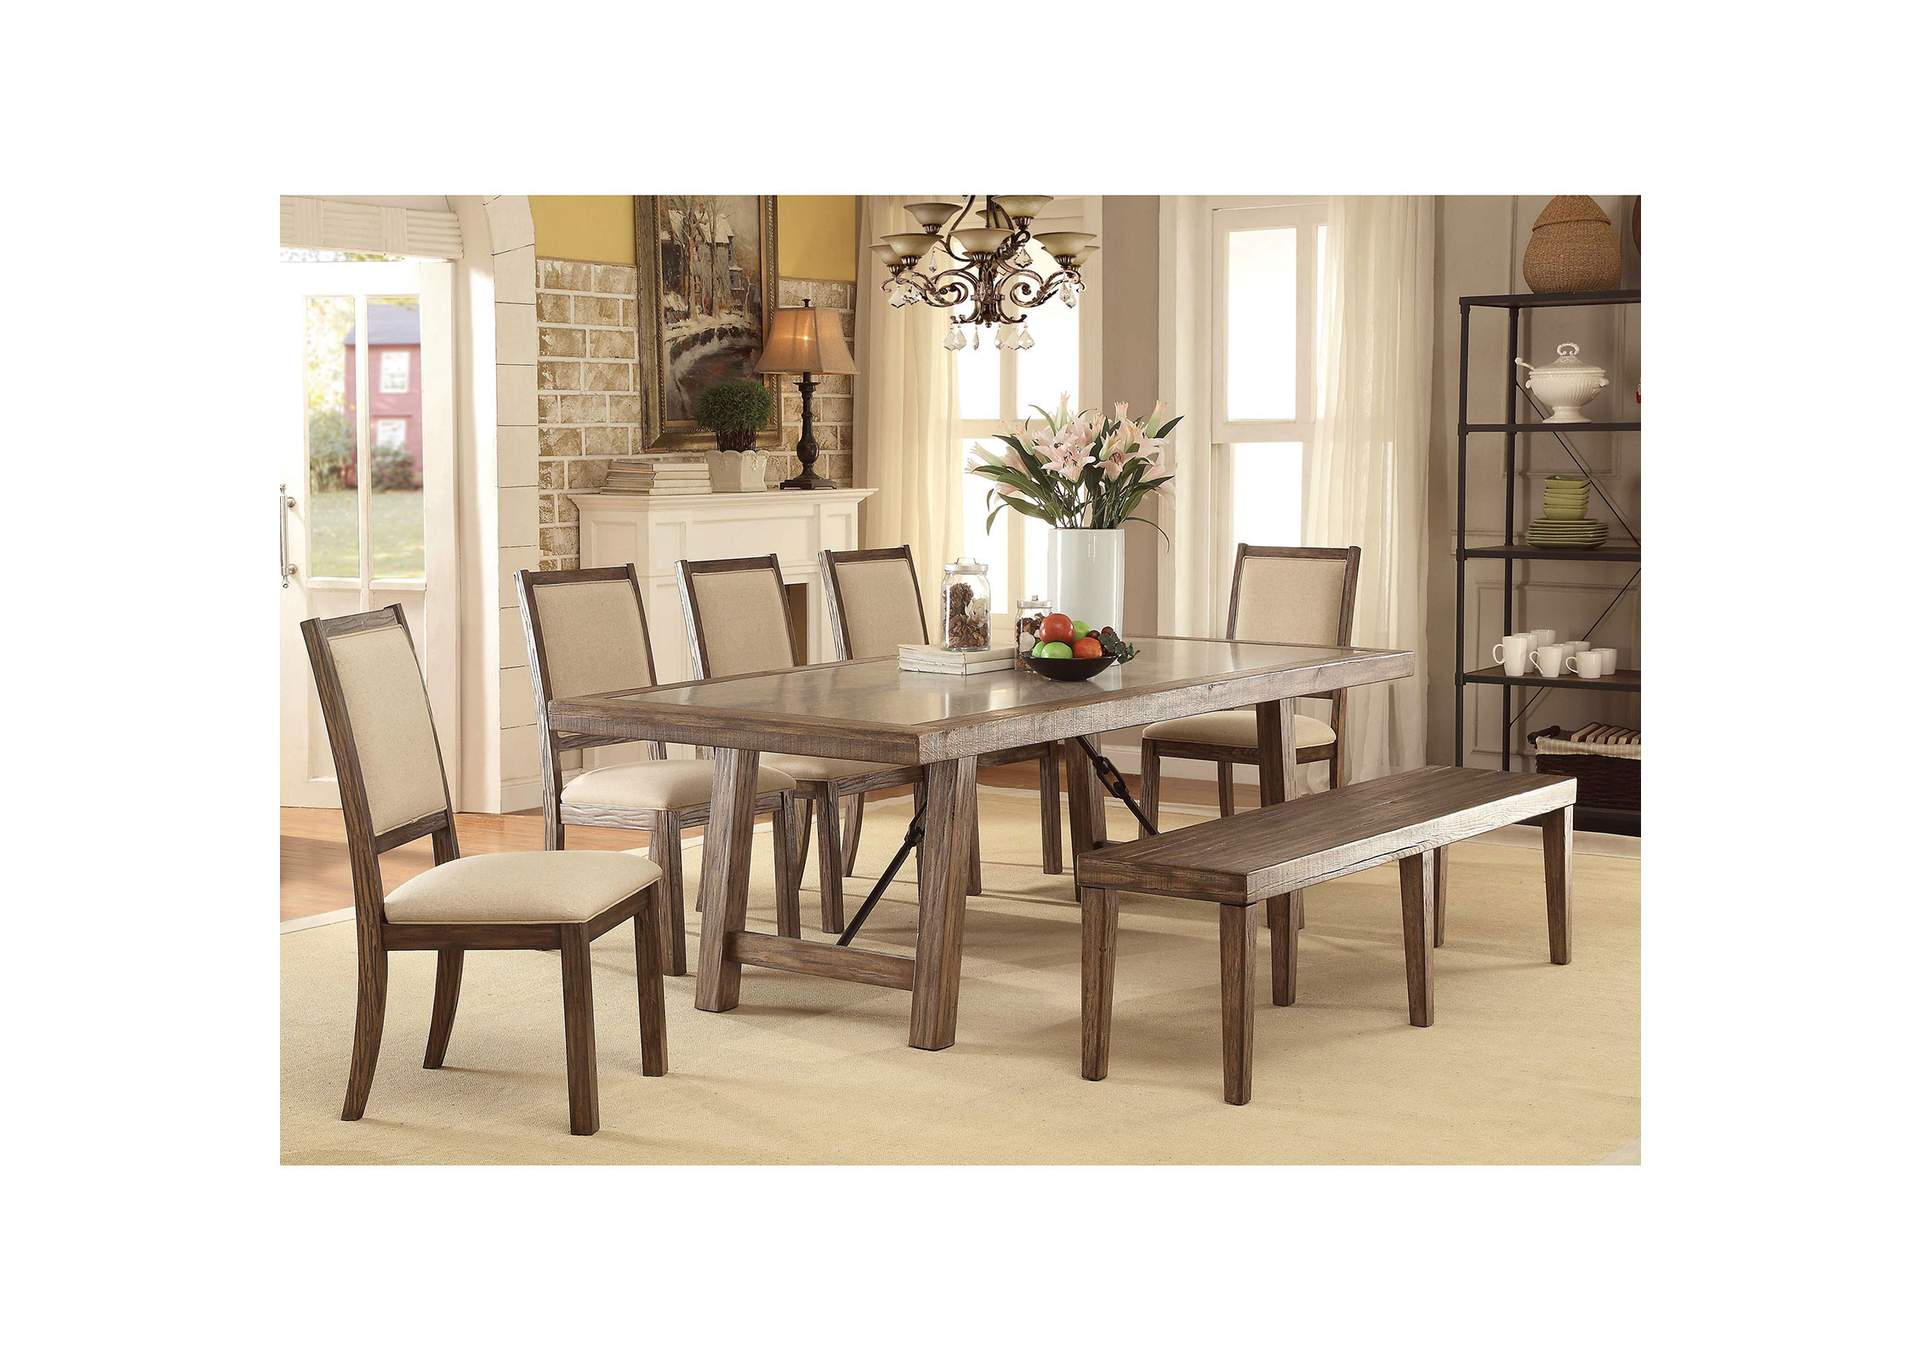 Colette Rustic Oak Dining Table,Furniture of America